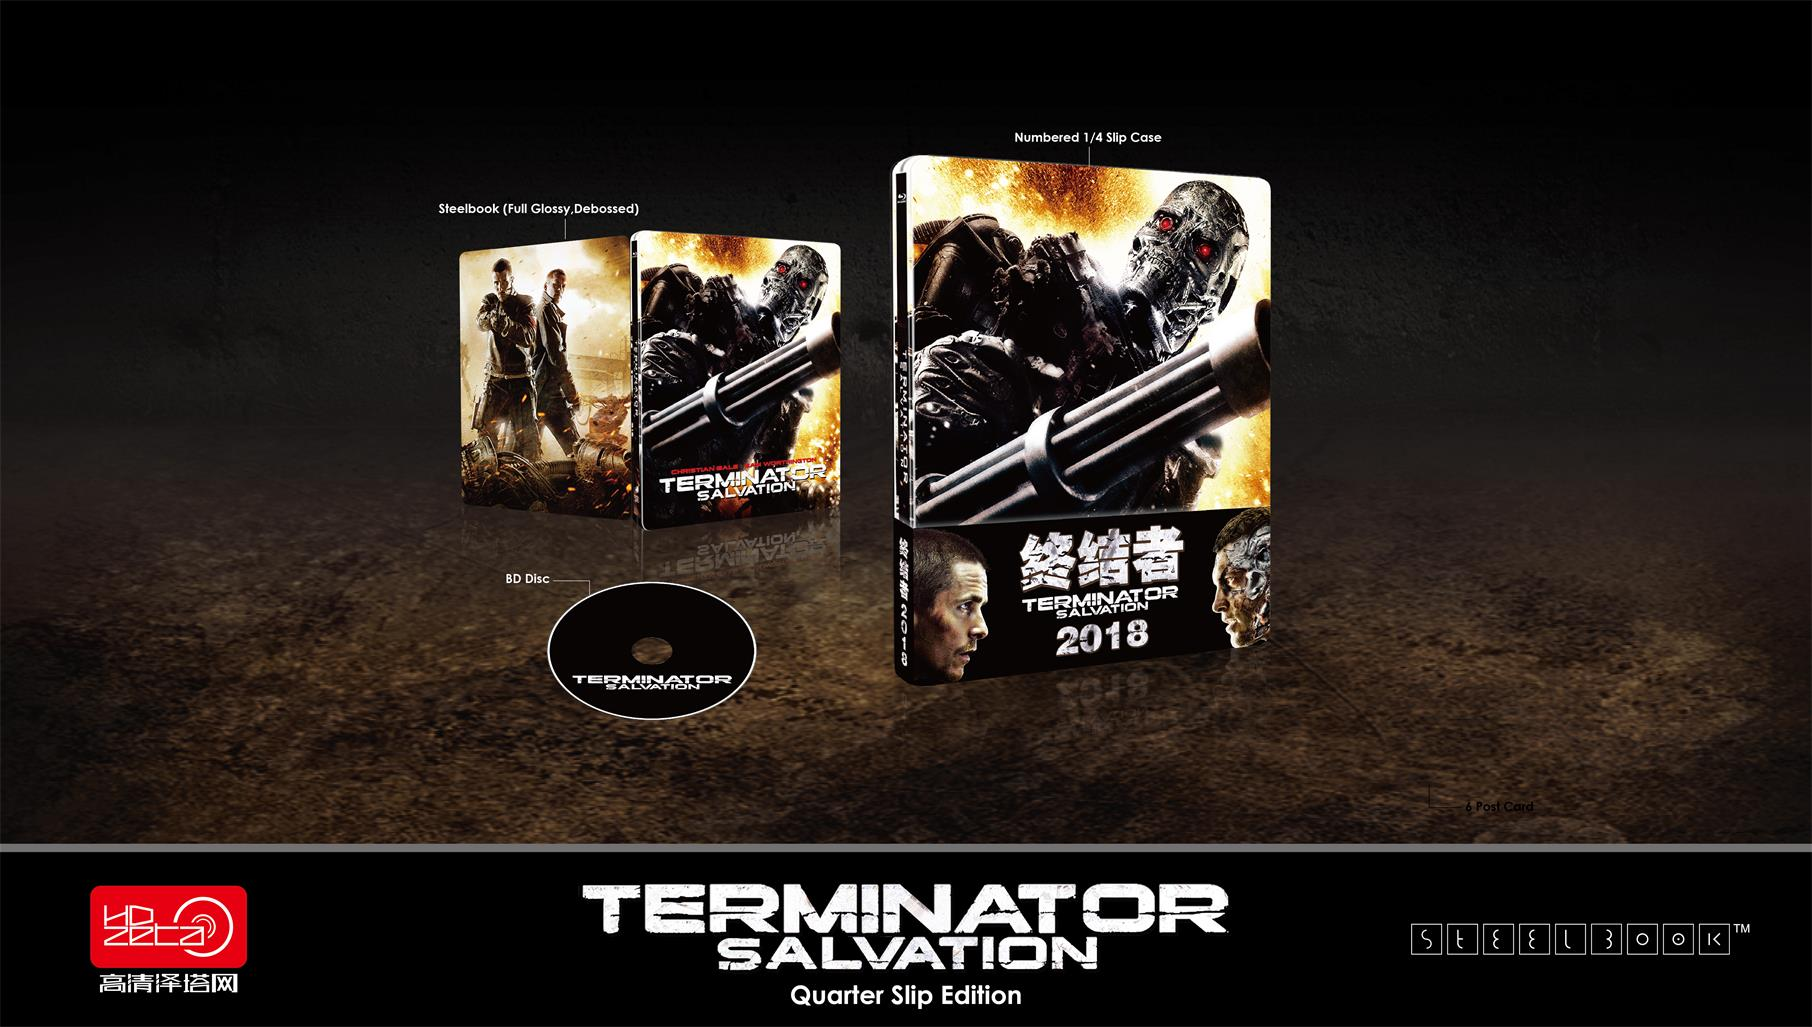 Terminator Salvation HDzeta Exclusive 1/4 Slip Edition